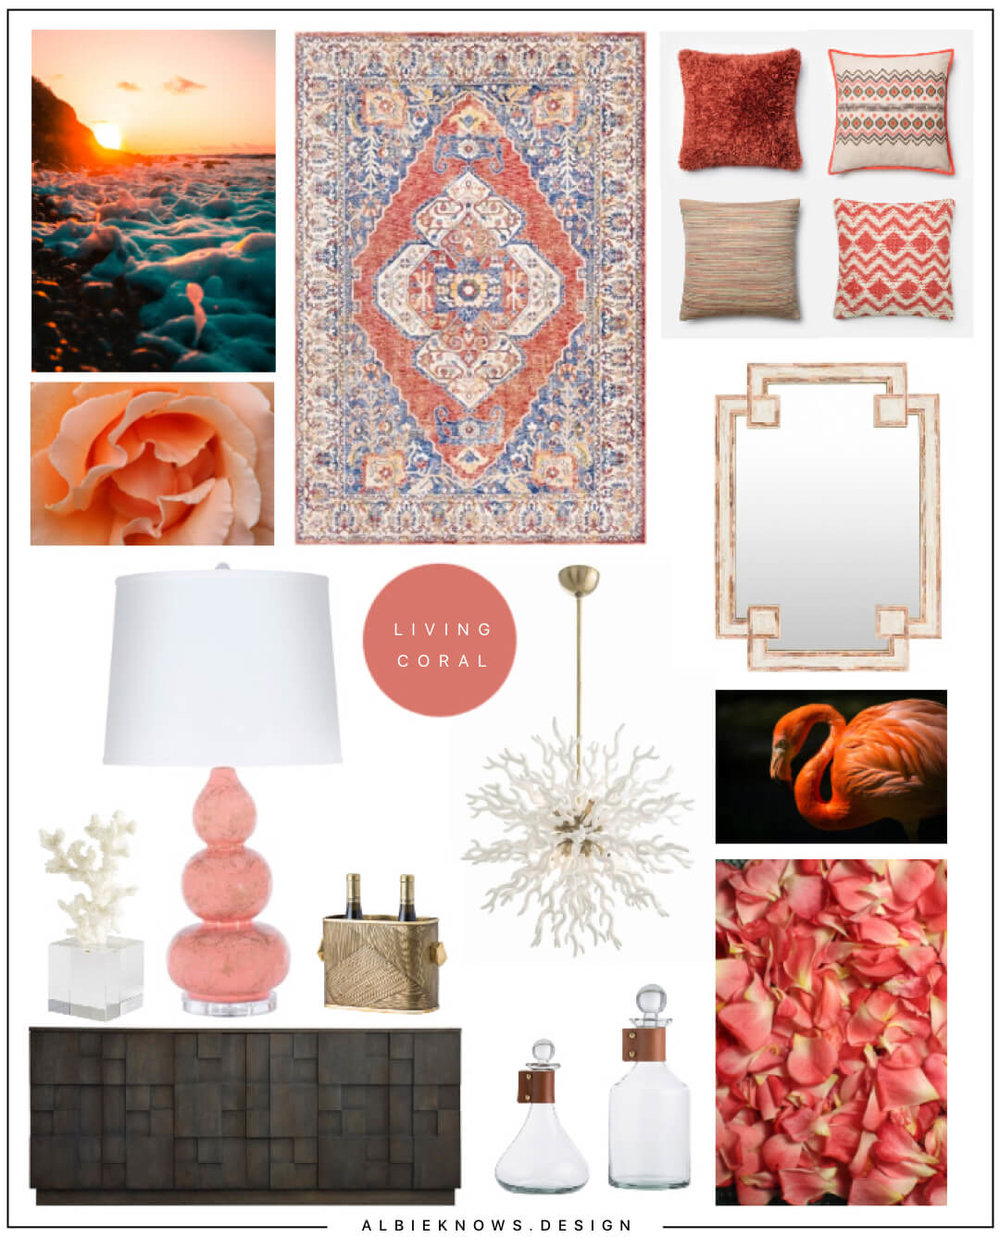 Albie Knows Pantone 2019 Color of the Year Living Coral